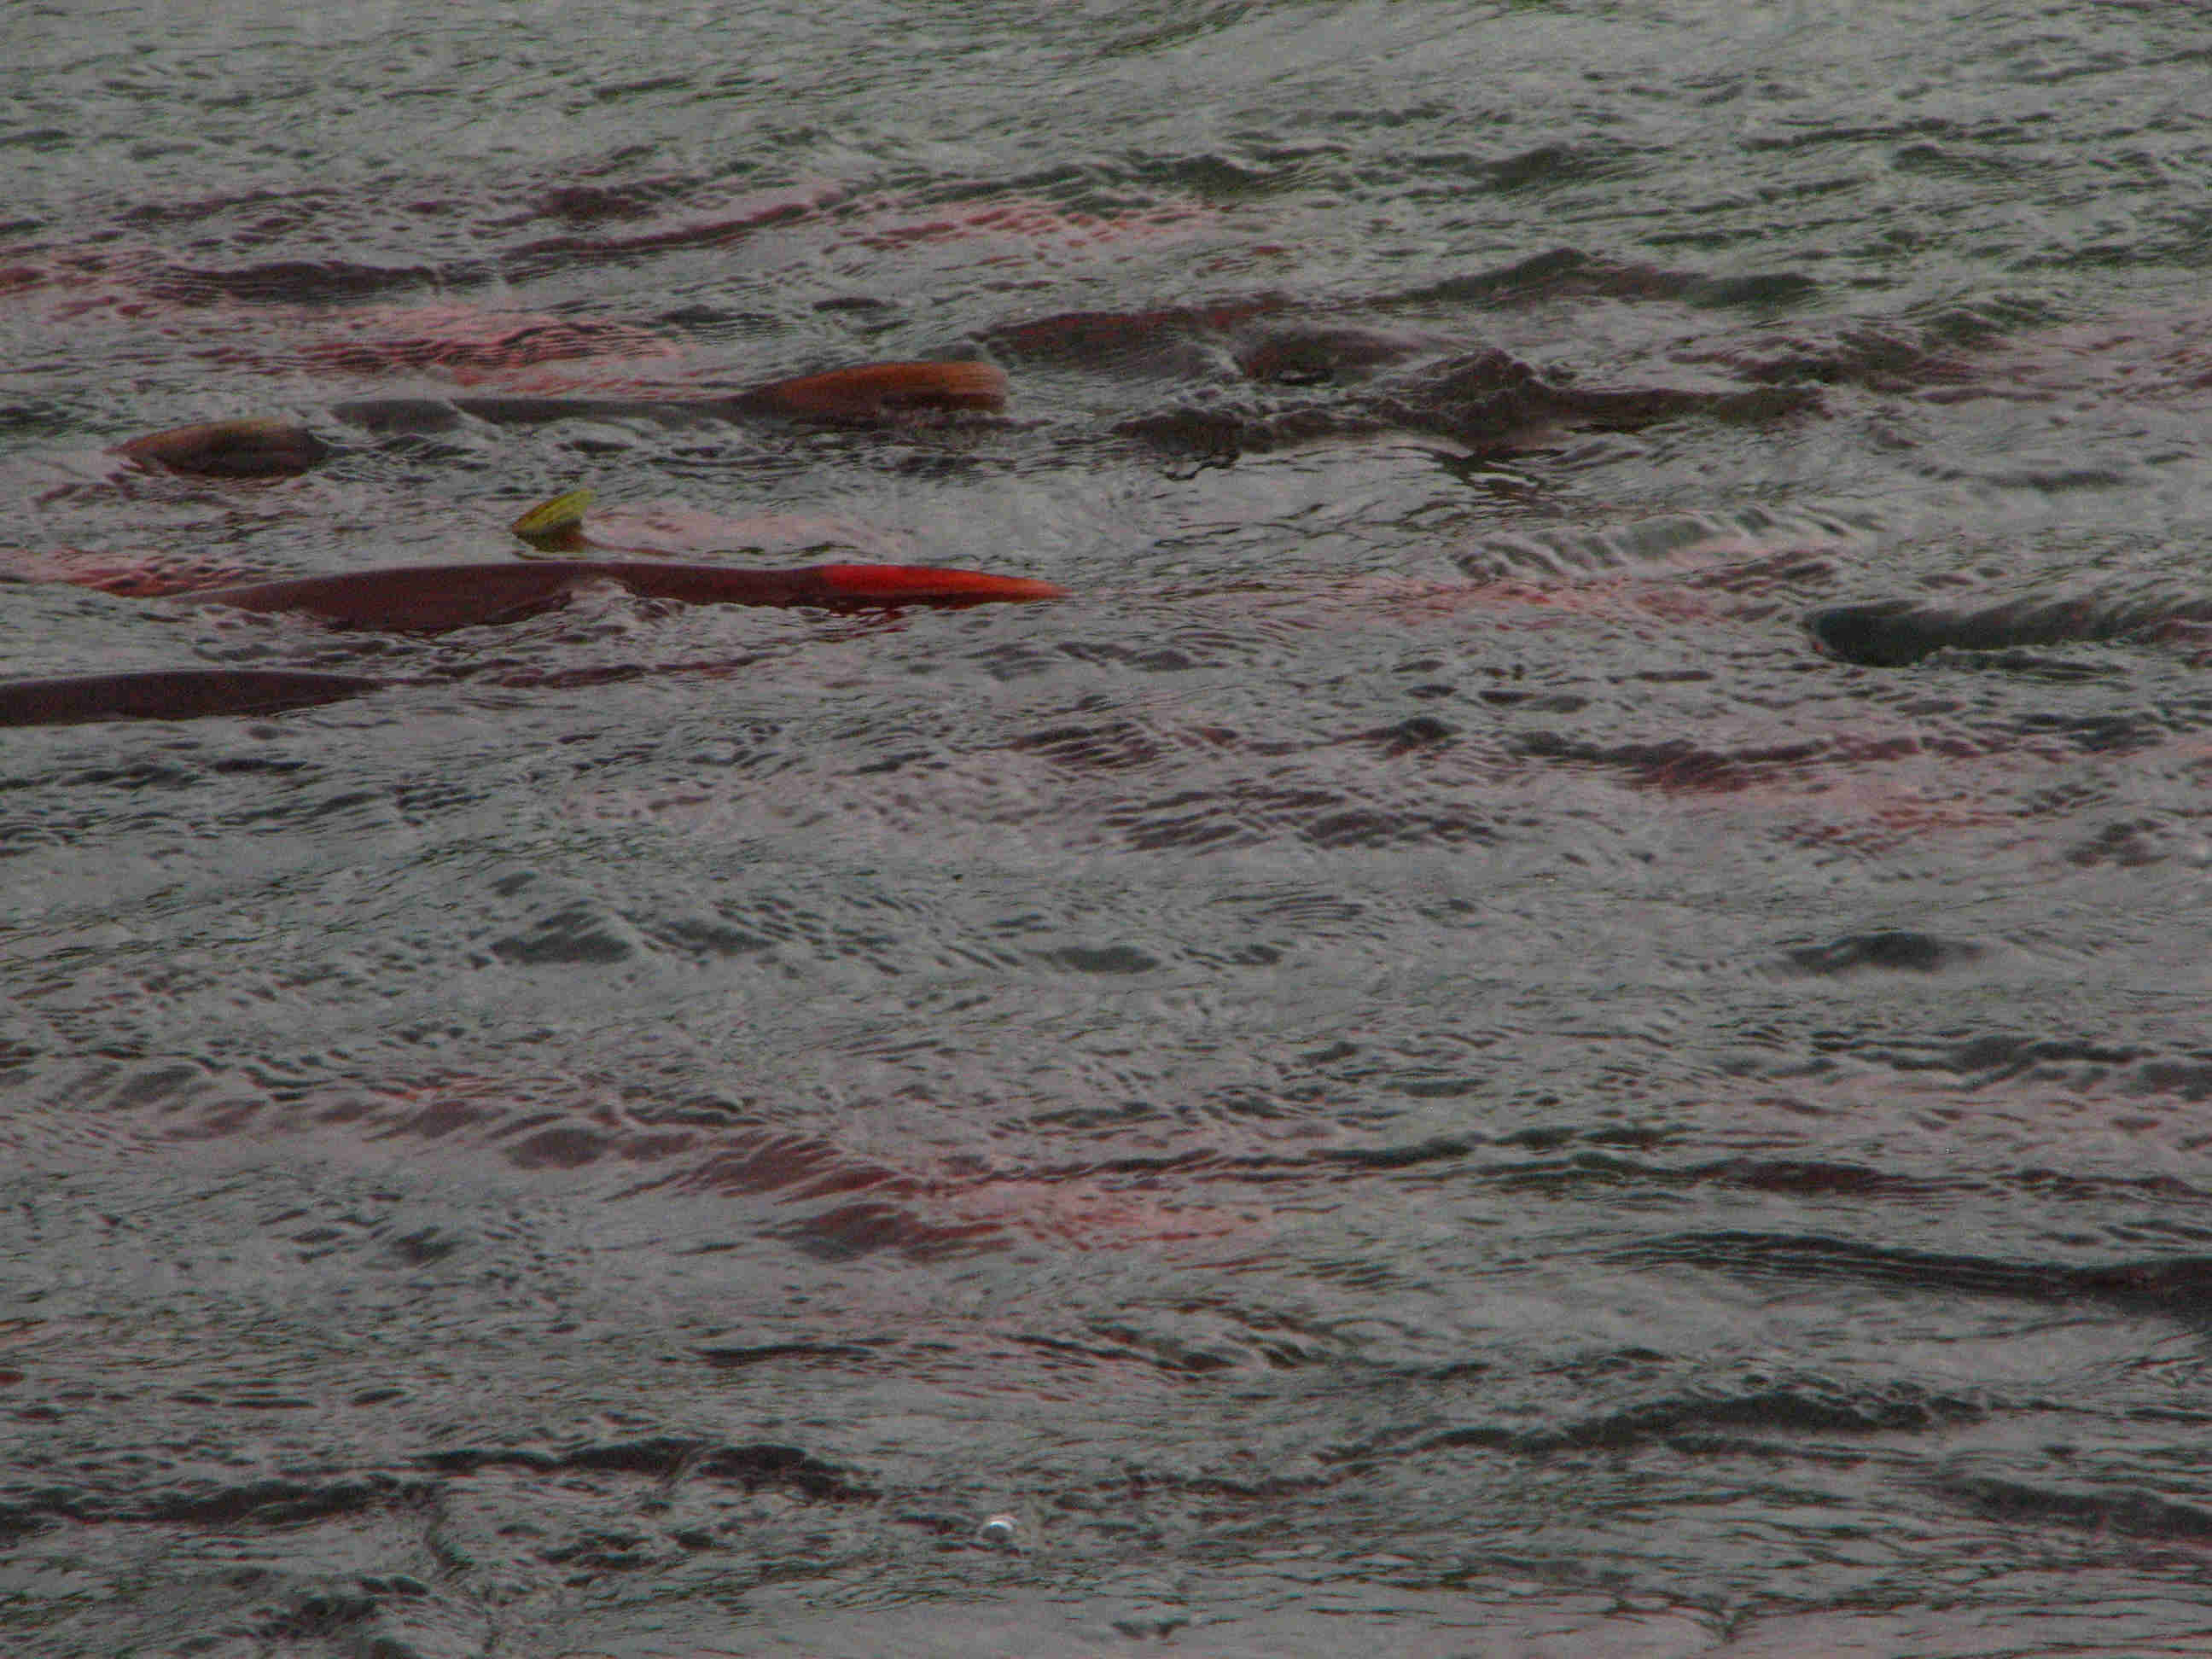 Fleshfest of Spawning Red Sockeye Salmon - ALASKA RAFT CONNECTION